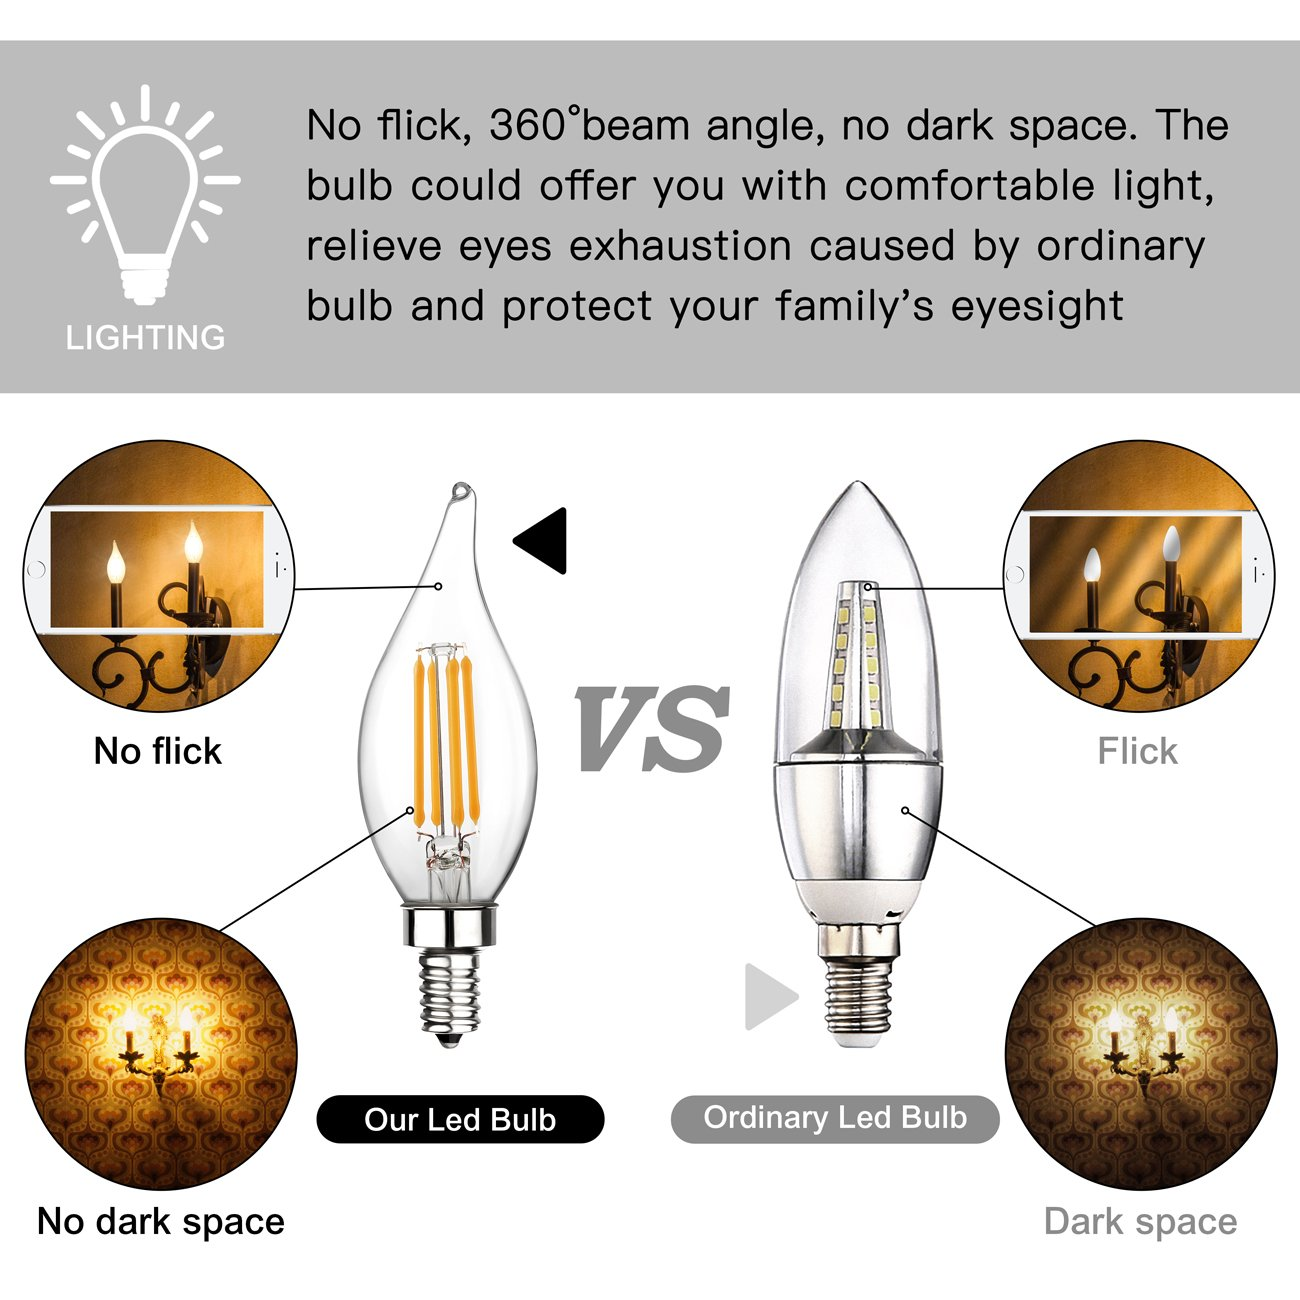 E12 LED Candelabra Bulb 60W Equivalent Dimmable LED Chandelier Light Bulbs 6W 2700K Warm White 550LM CA11 Flame Tip Vintage LED Filament Candle Bulb with Decorative Candelabra Base, 6 Packs, by Boncoo by Boncoo (Image #5)